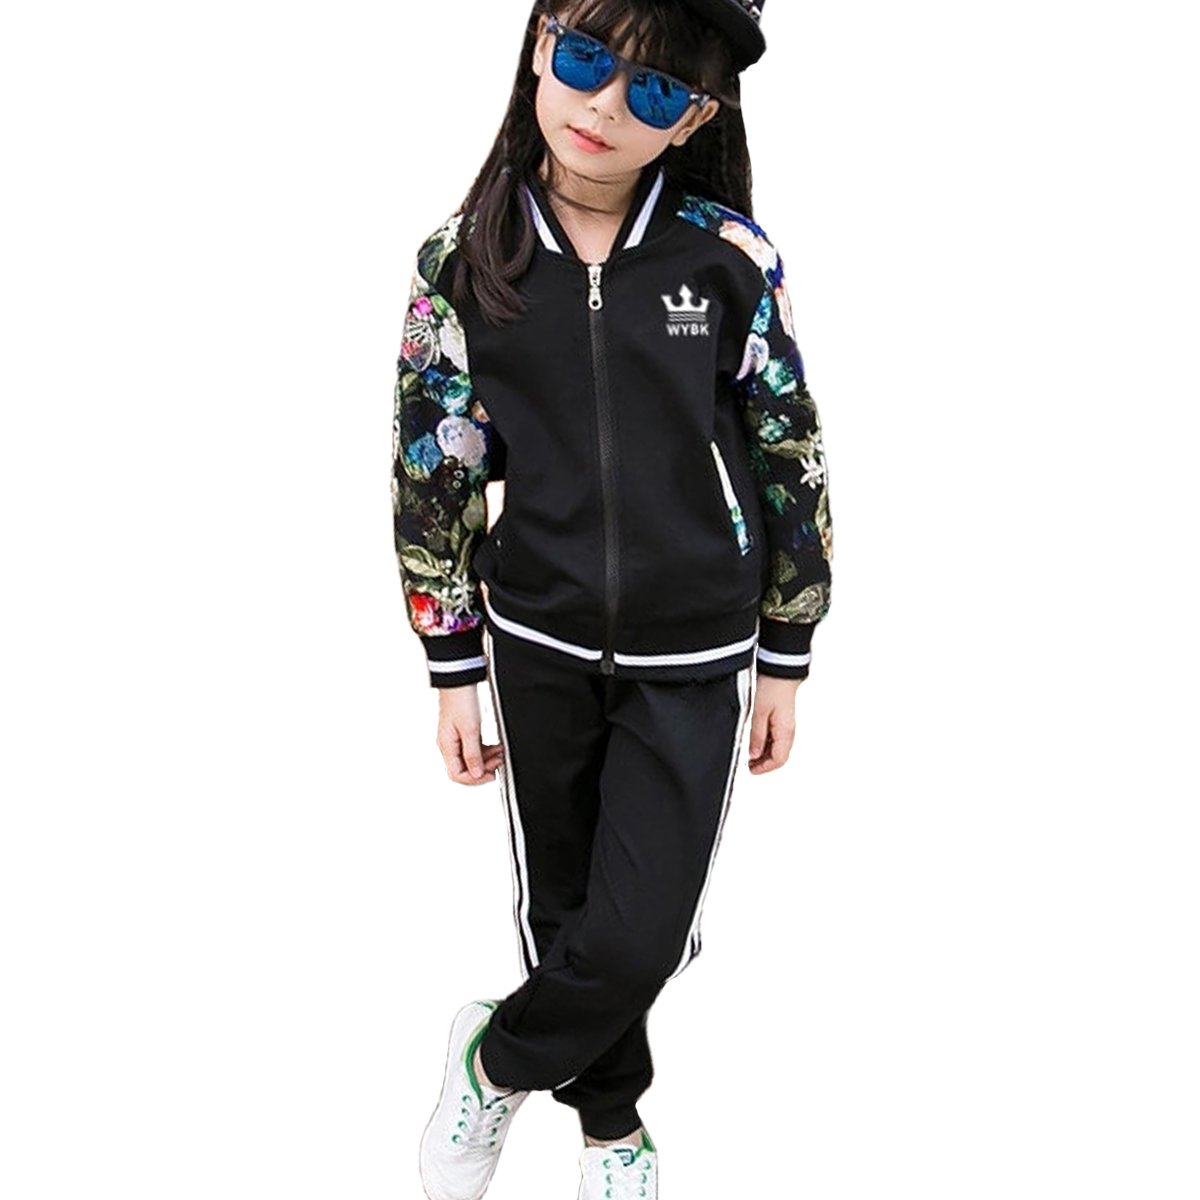 OnlyAngel Girls Fashion Tracksuits Zipper Jacket with Floral Sleeve and Elastic Waist Pant Size 3-11 Yrs (8-9 Years, Black)